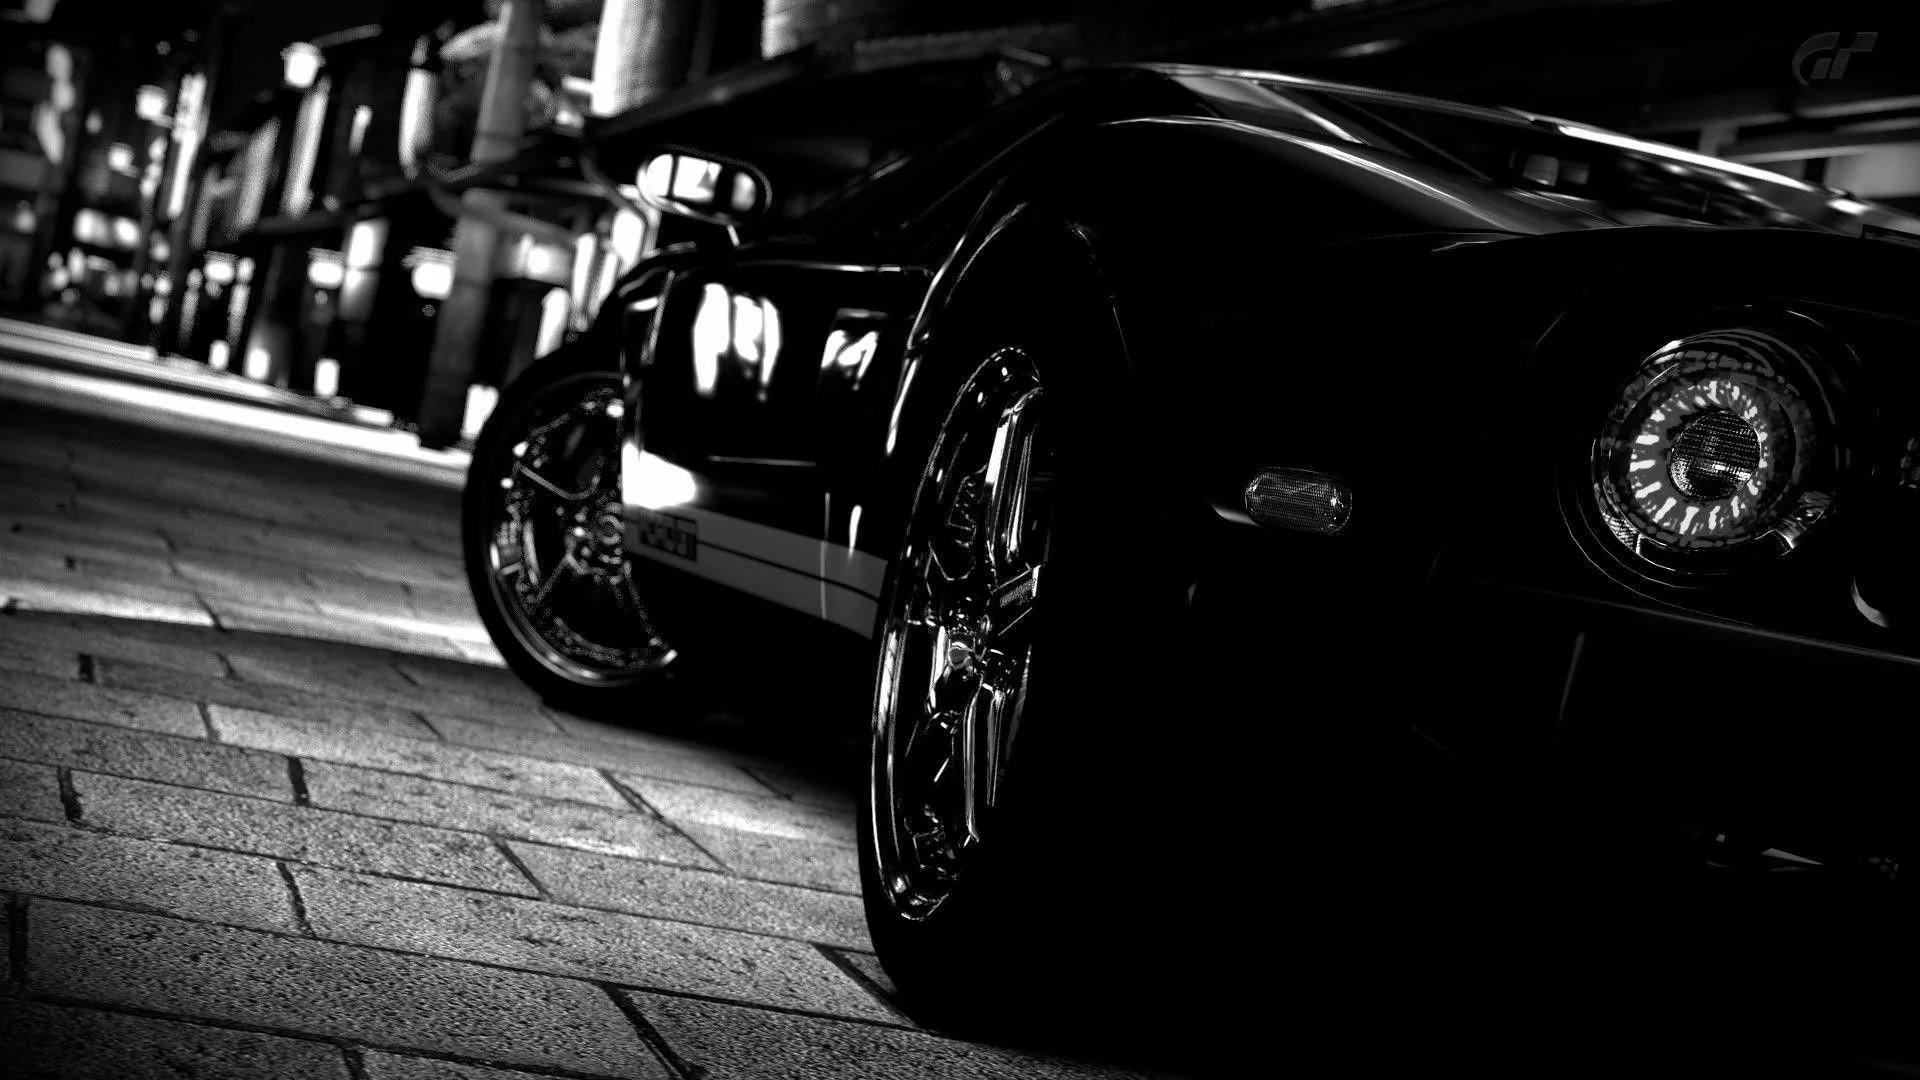 1920x1080 best hd wallpapers of cars full hd hdtv fhd 1080p desktop backgrounds for pc mac laptop tablet mobile phone category. 1920x1080 Dark Car Wallpapers Top Free 1920x1080 Dark Car Backgrounds Wallpaperaccess